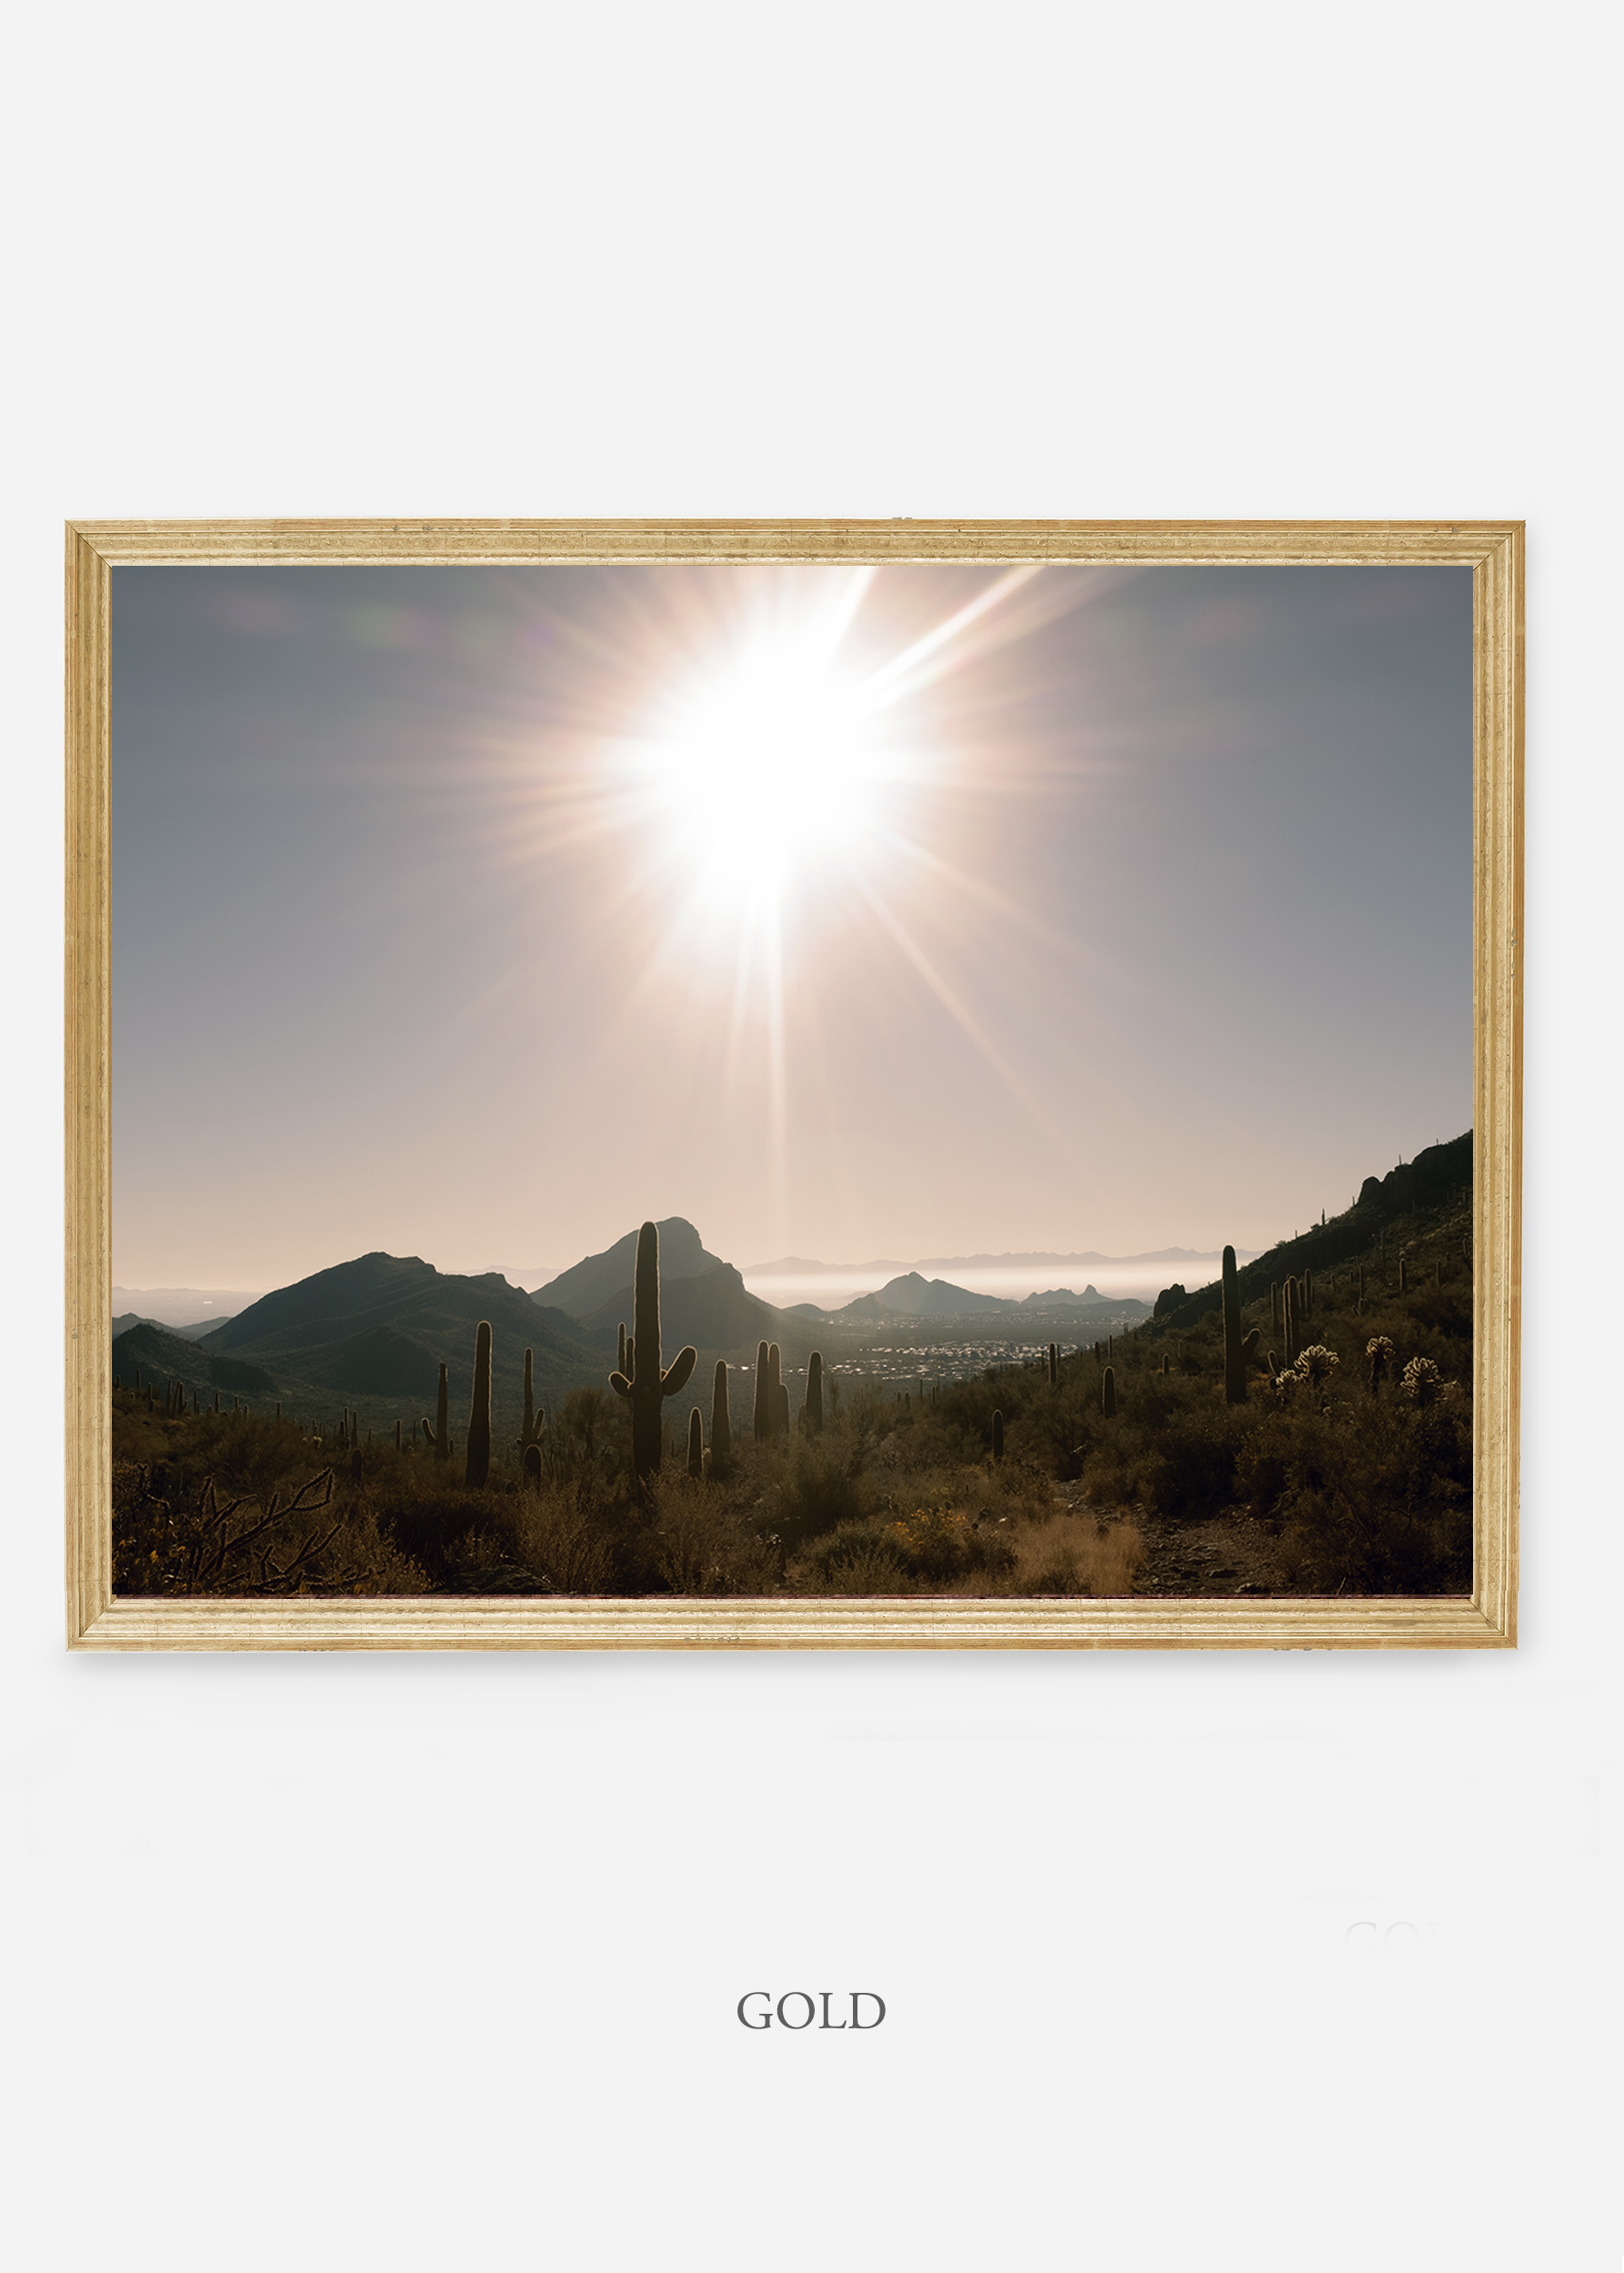 nomat-goldframe-saguaroNo.15-wildercalifornia-art-wallart-cactusprint-homedecor-prints-arizona-botanical-artwork-interiordesign.jpg